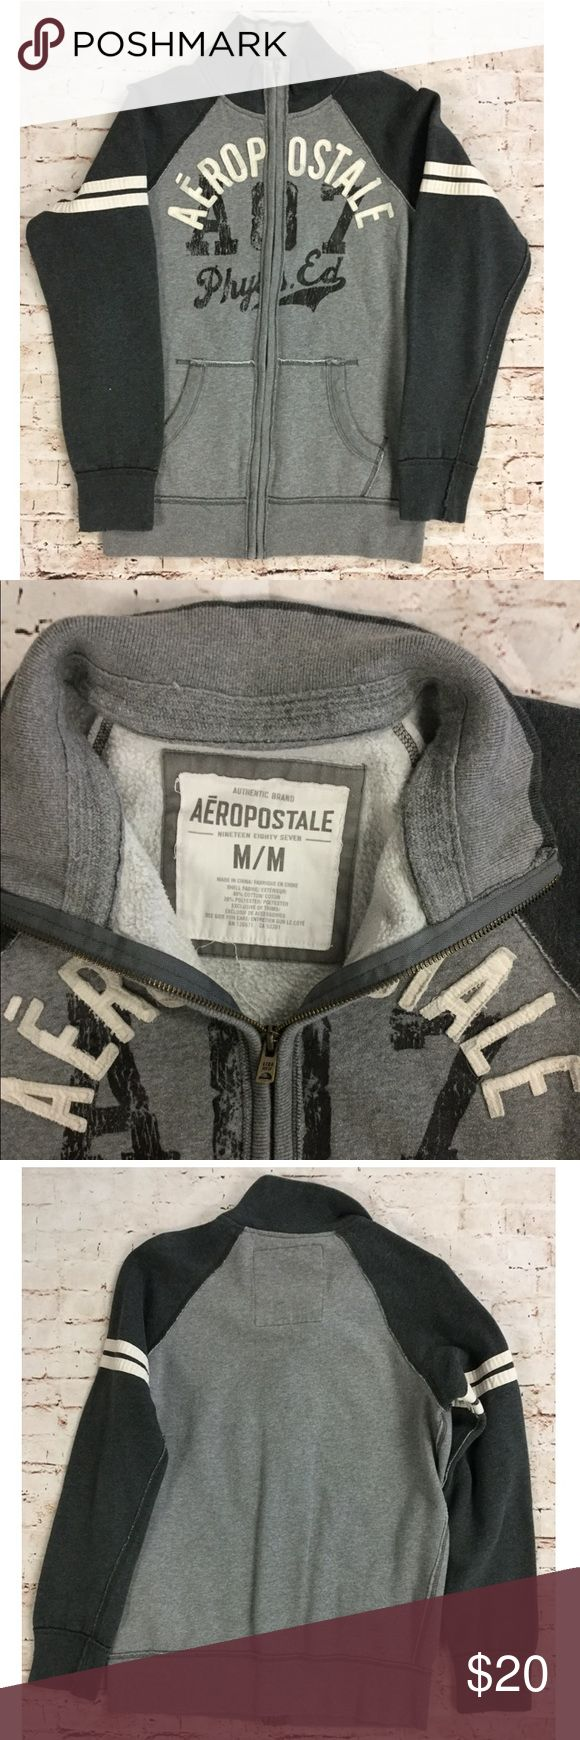 """Aeropostale Men's Grey Zip Up Sweater Grey and white Aeropostale men's zip up sweater, size medium.  Cannot be modeled, but measurements are provided below. All garments come from a smoke-free home and have no flaws unless stated above. Feel free to ask any questions or make offers!  Approximate Measurements:     Length: 28""""     Underarm to underarm: 23""""     Waist: 21"""" Aeropostale Sweaters Zip Up"""